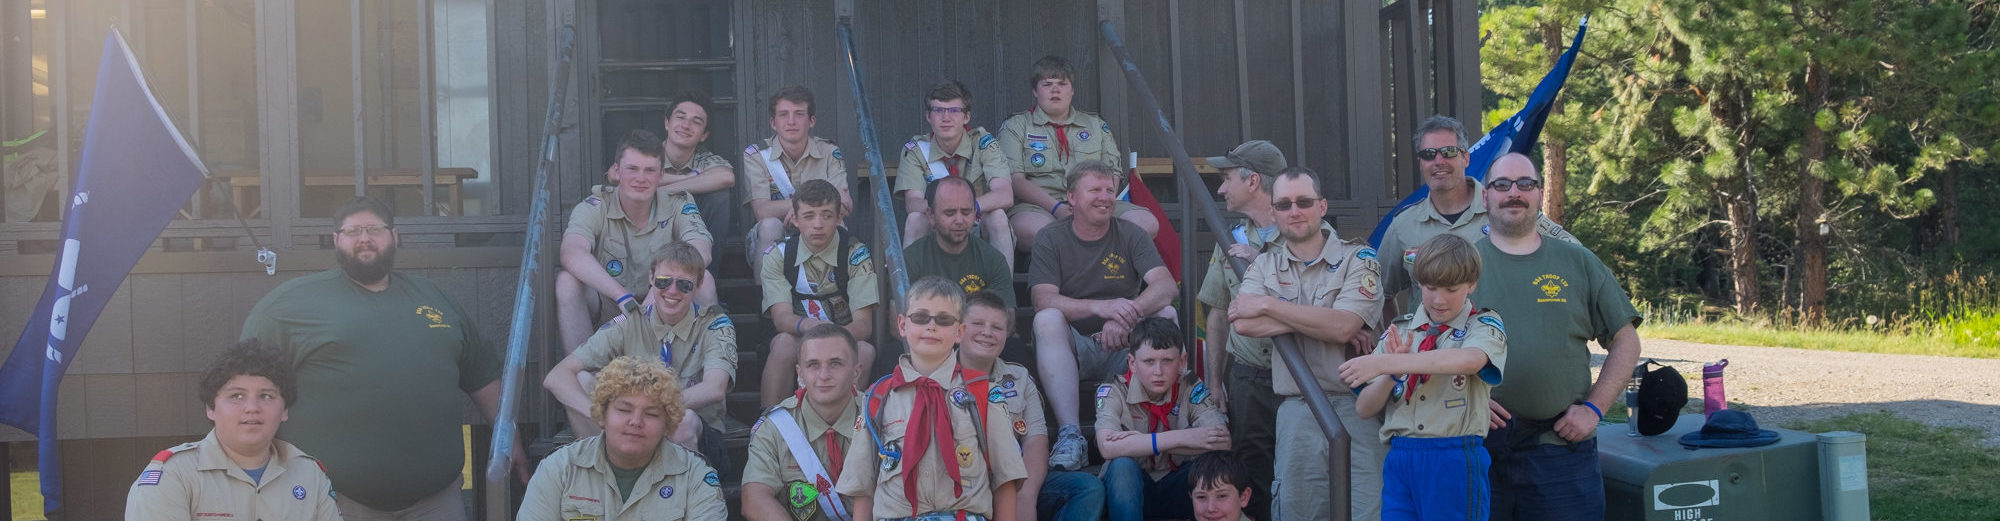 Boy Scout Troop 139